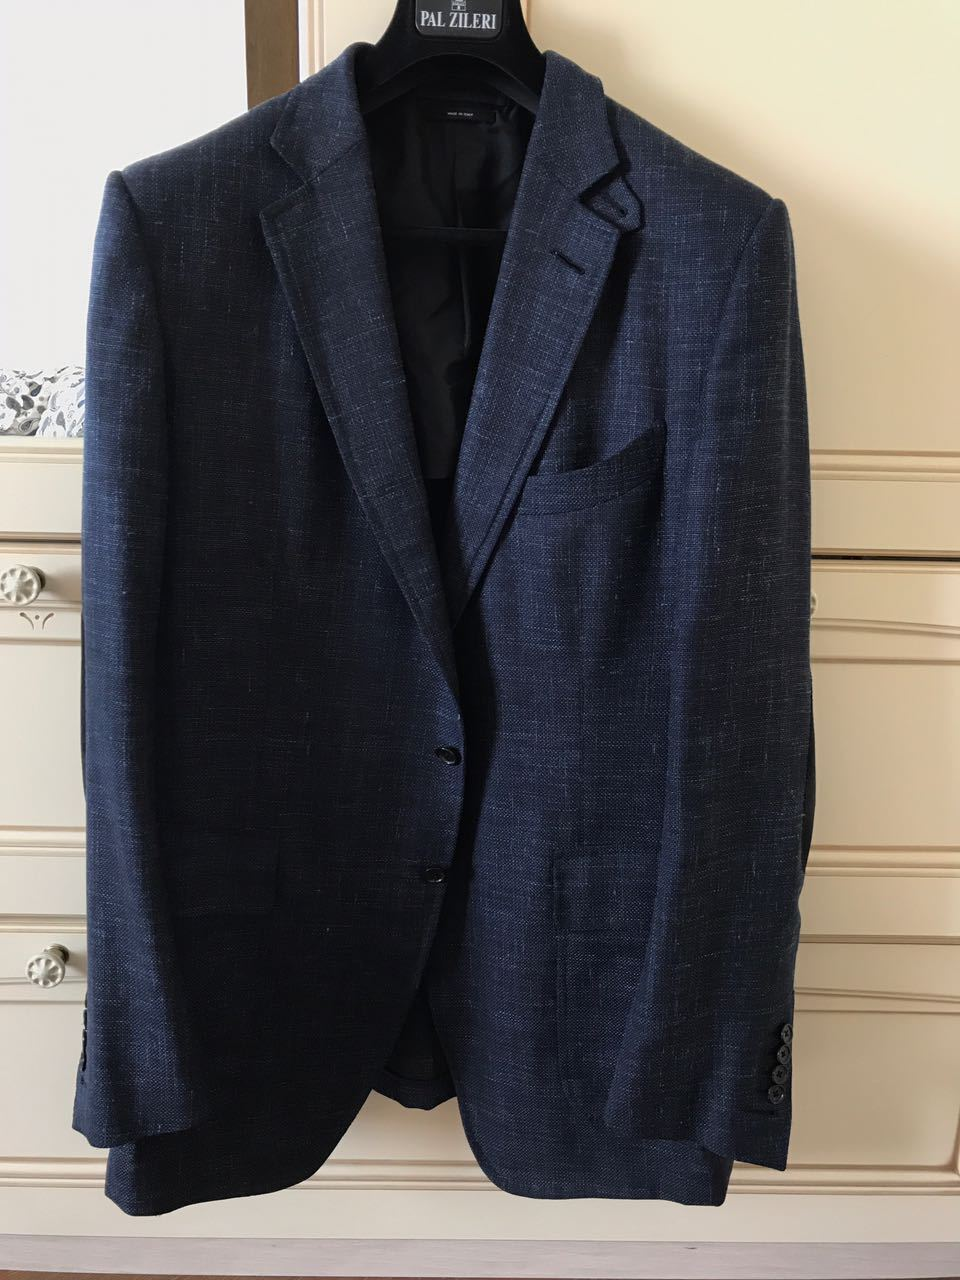 TOM FORD BLUE WOOL BLEND JACKET WITH SUEDE ELBOW PATCES SIZE 56L US TFR10